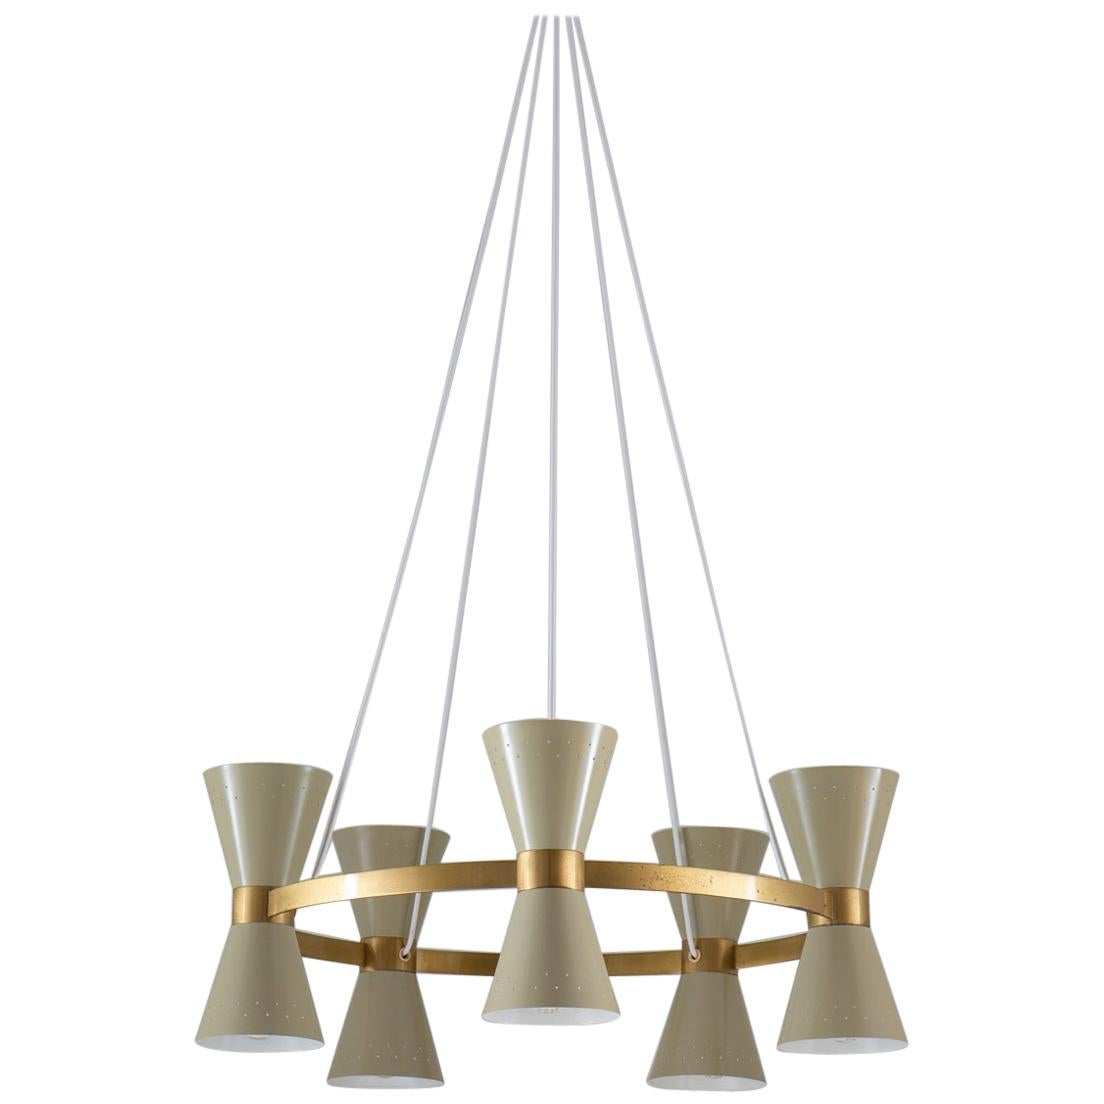 Swedish Midcentury Chandelier in Brass and Metal by Alf Svensson for Bergboms